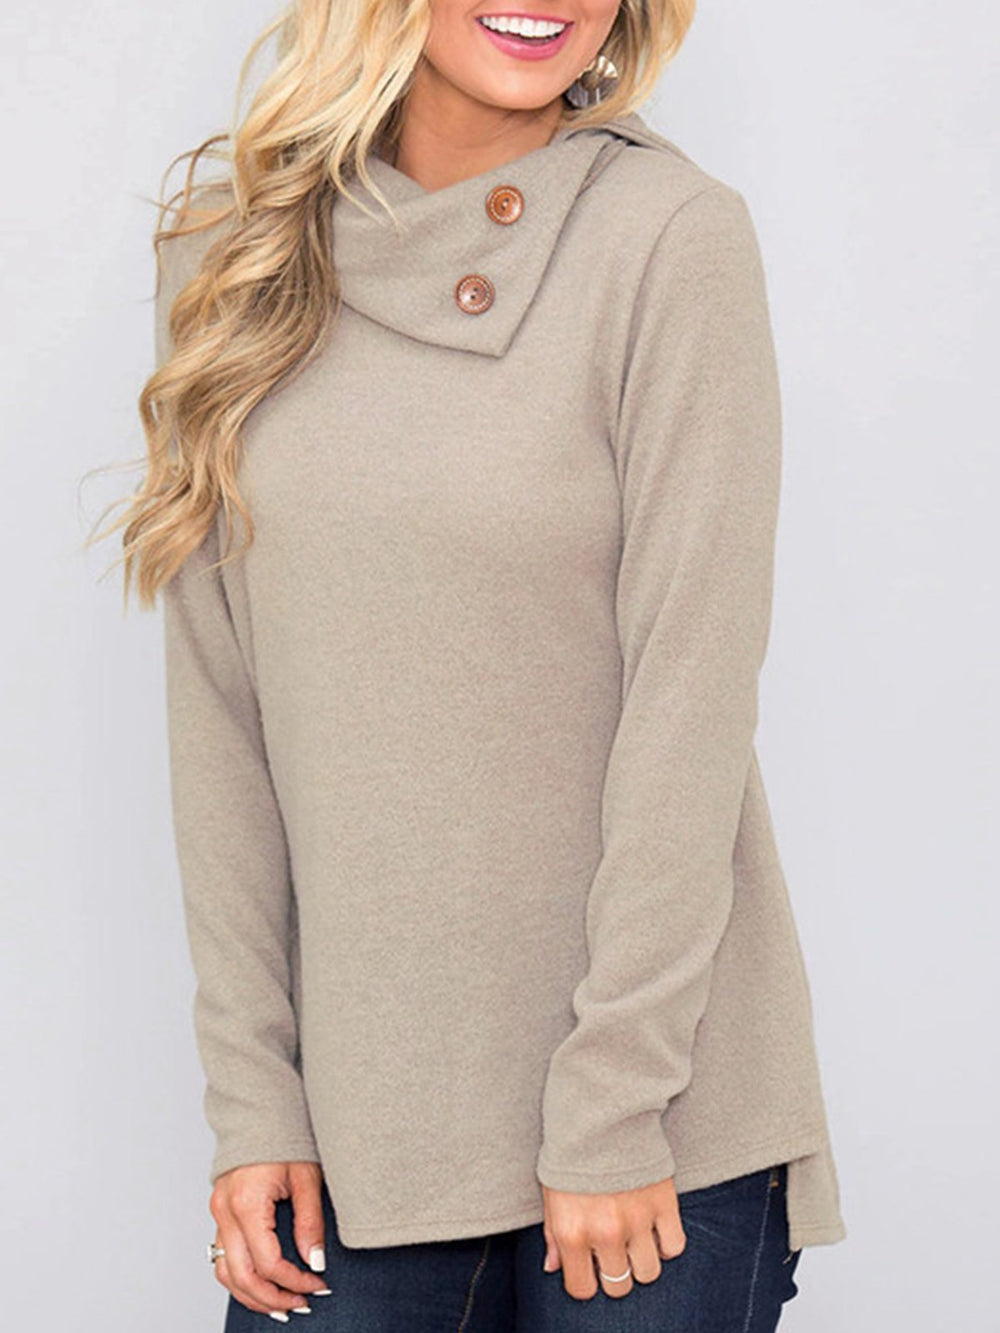 Buttoned Collar Lapel Long Sleeve Casual Sweater